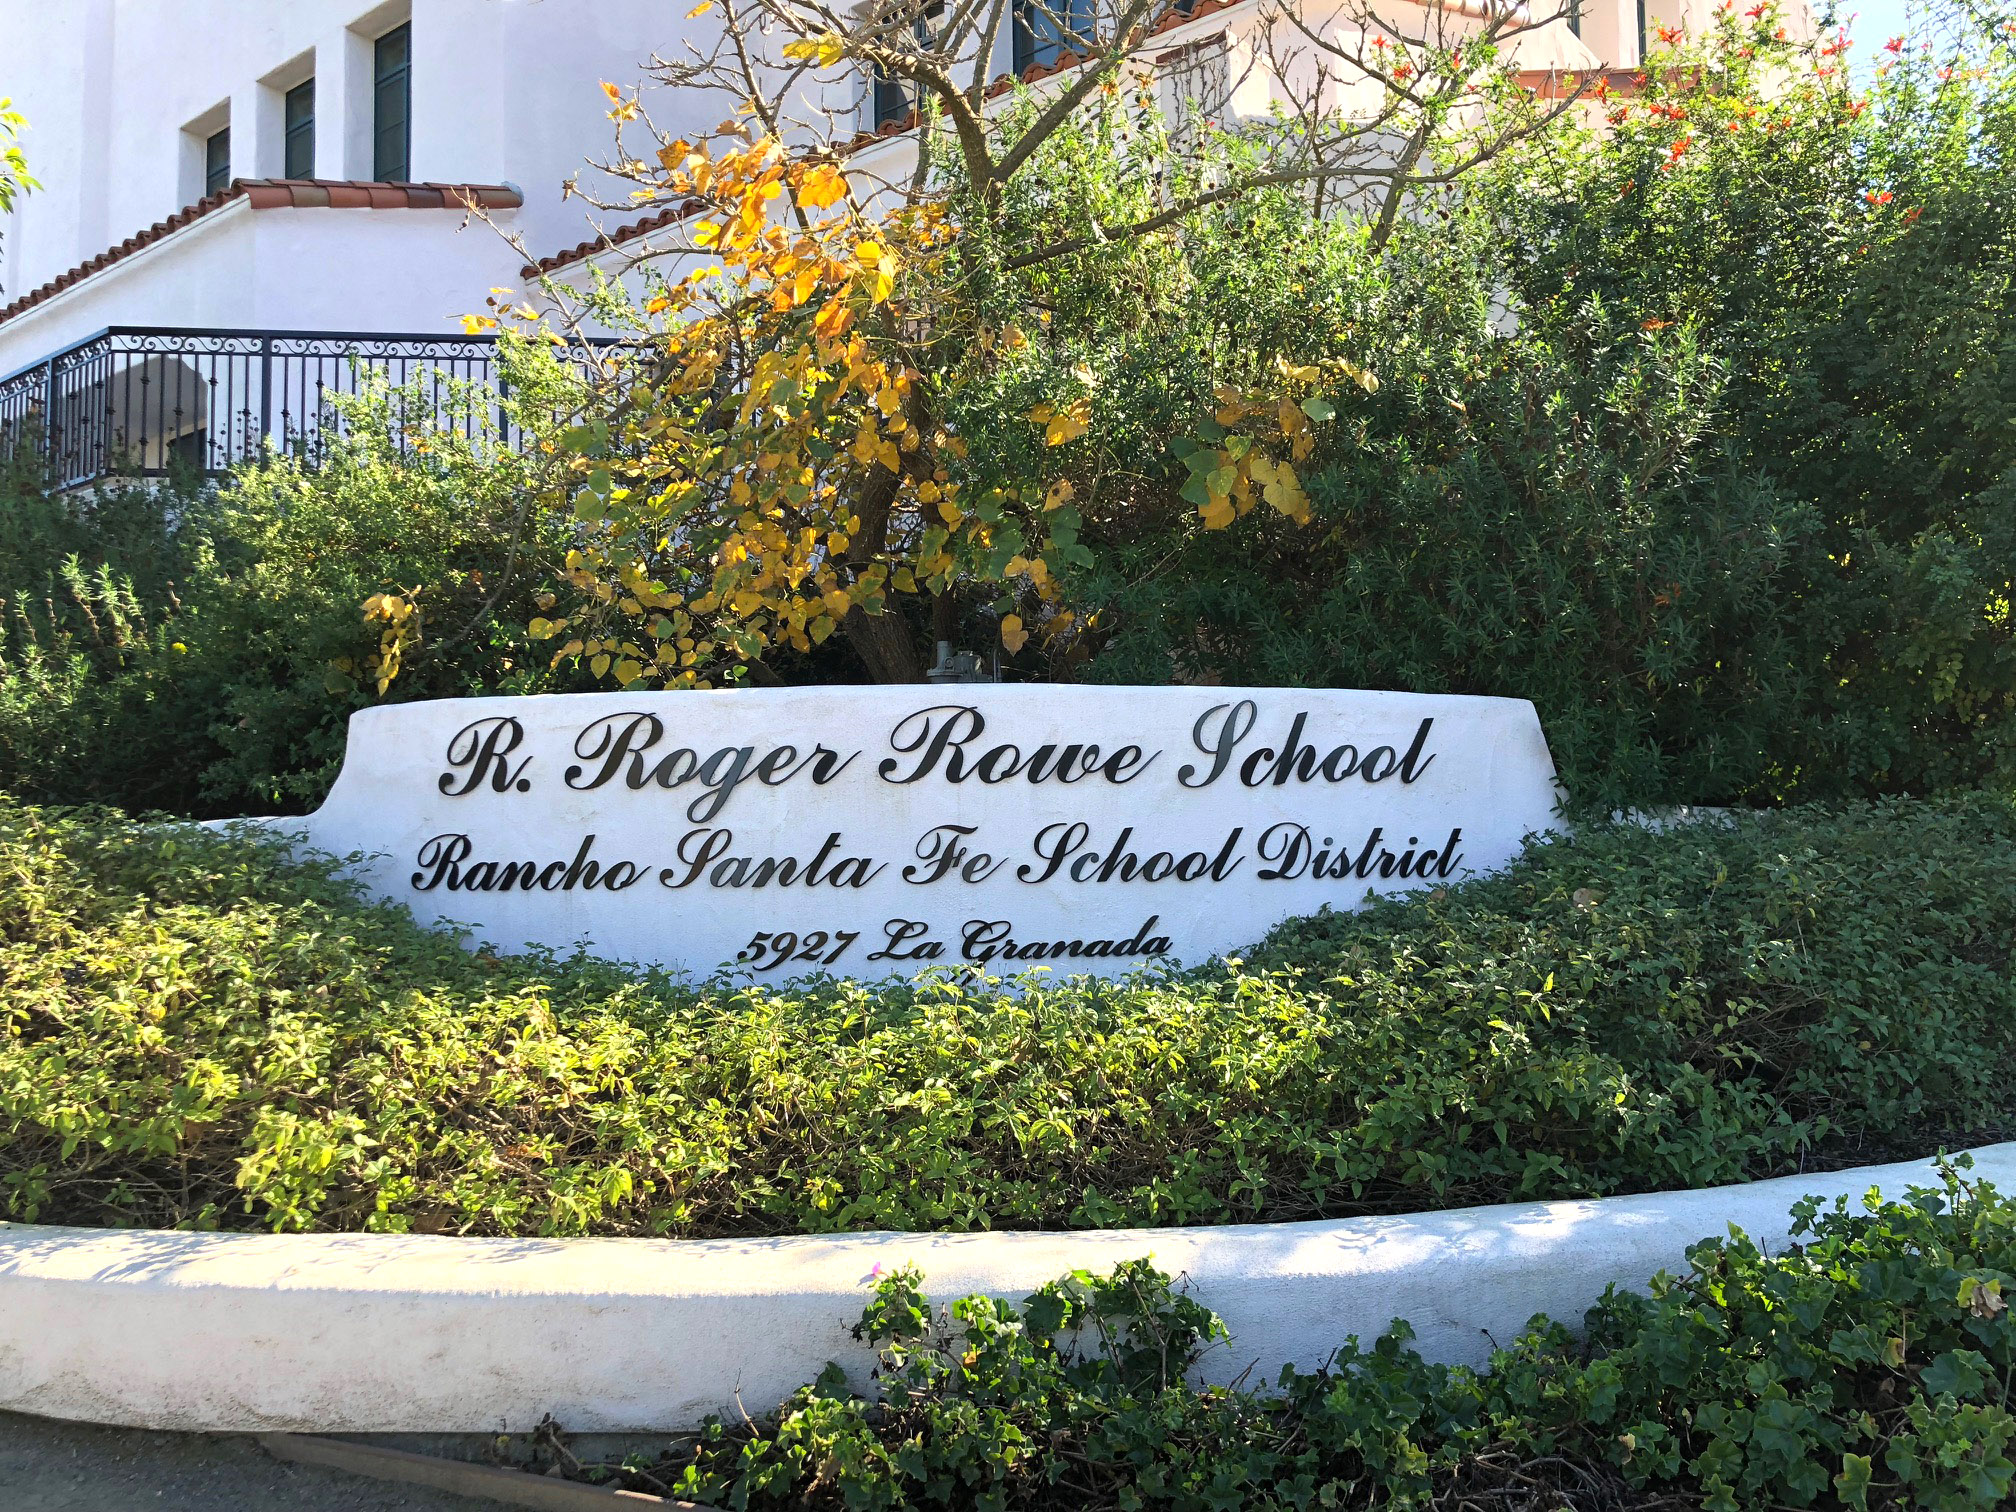 RSF School Board unanimously approves safety consultant at special meeting